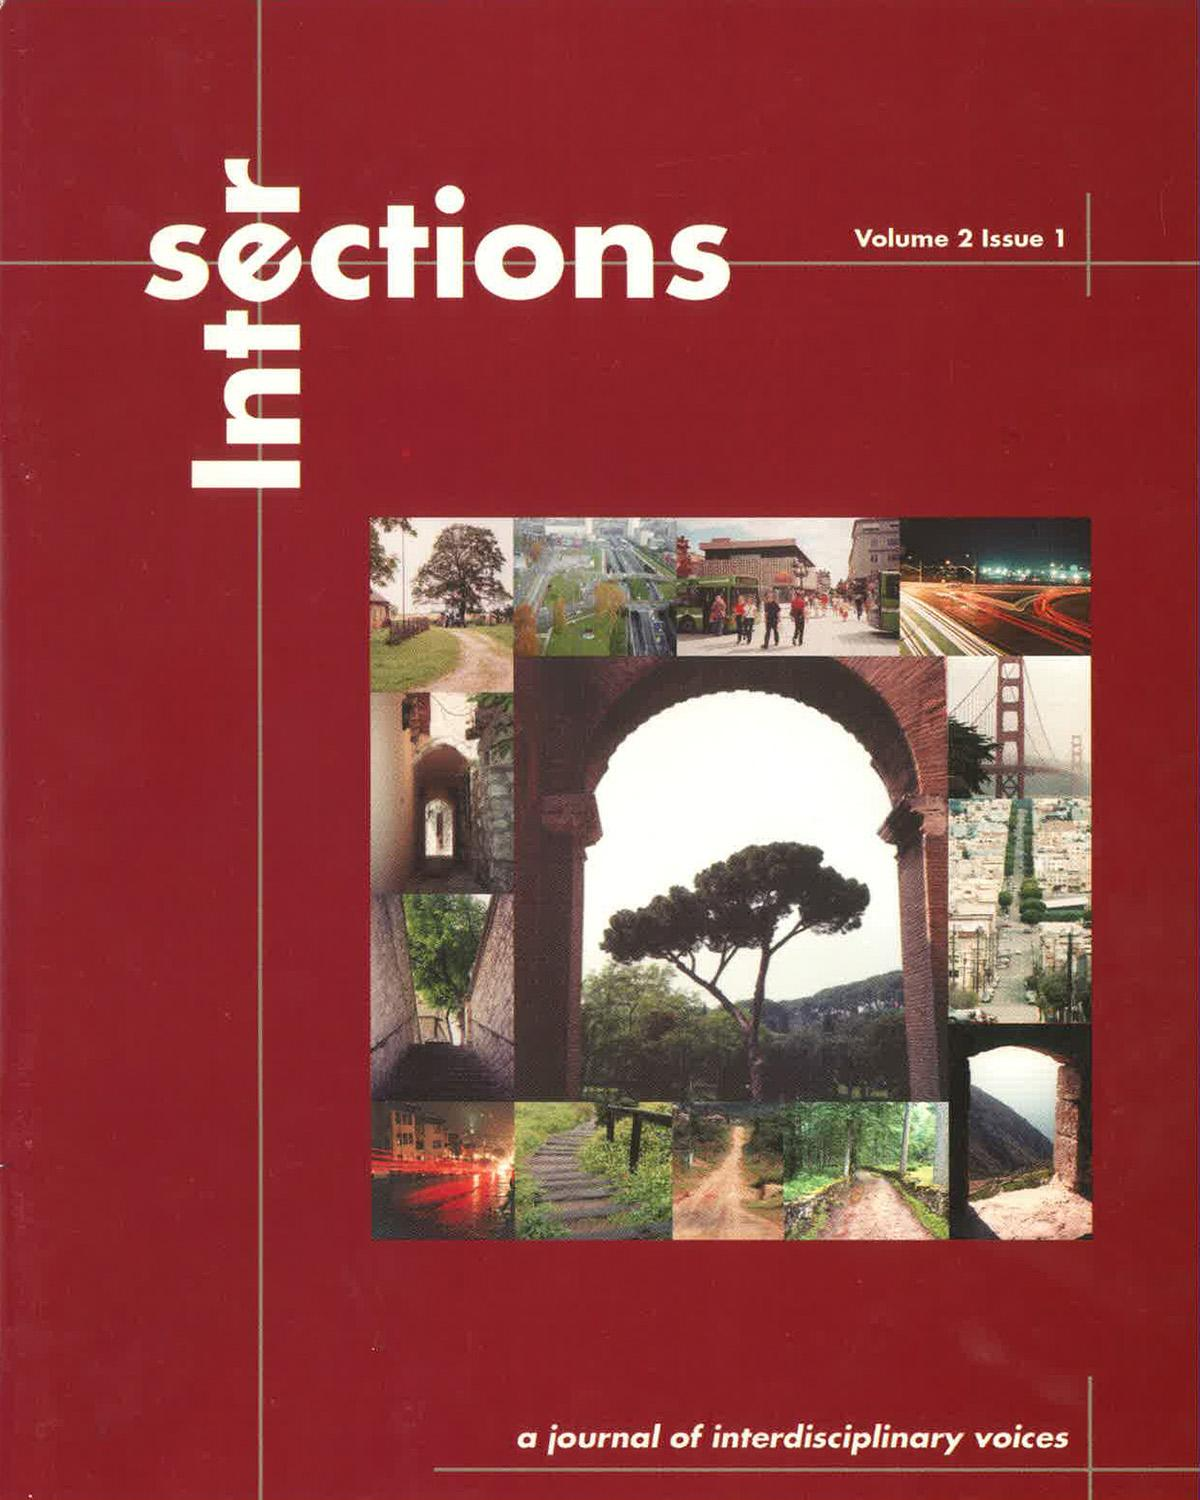 Intersections Volume 2 Issue 1